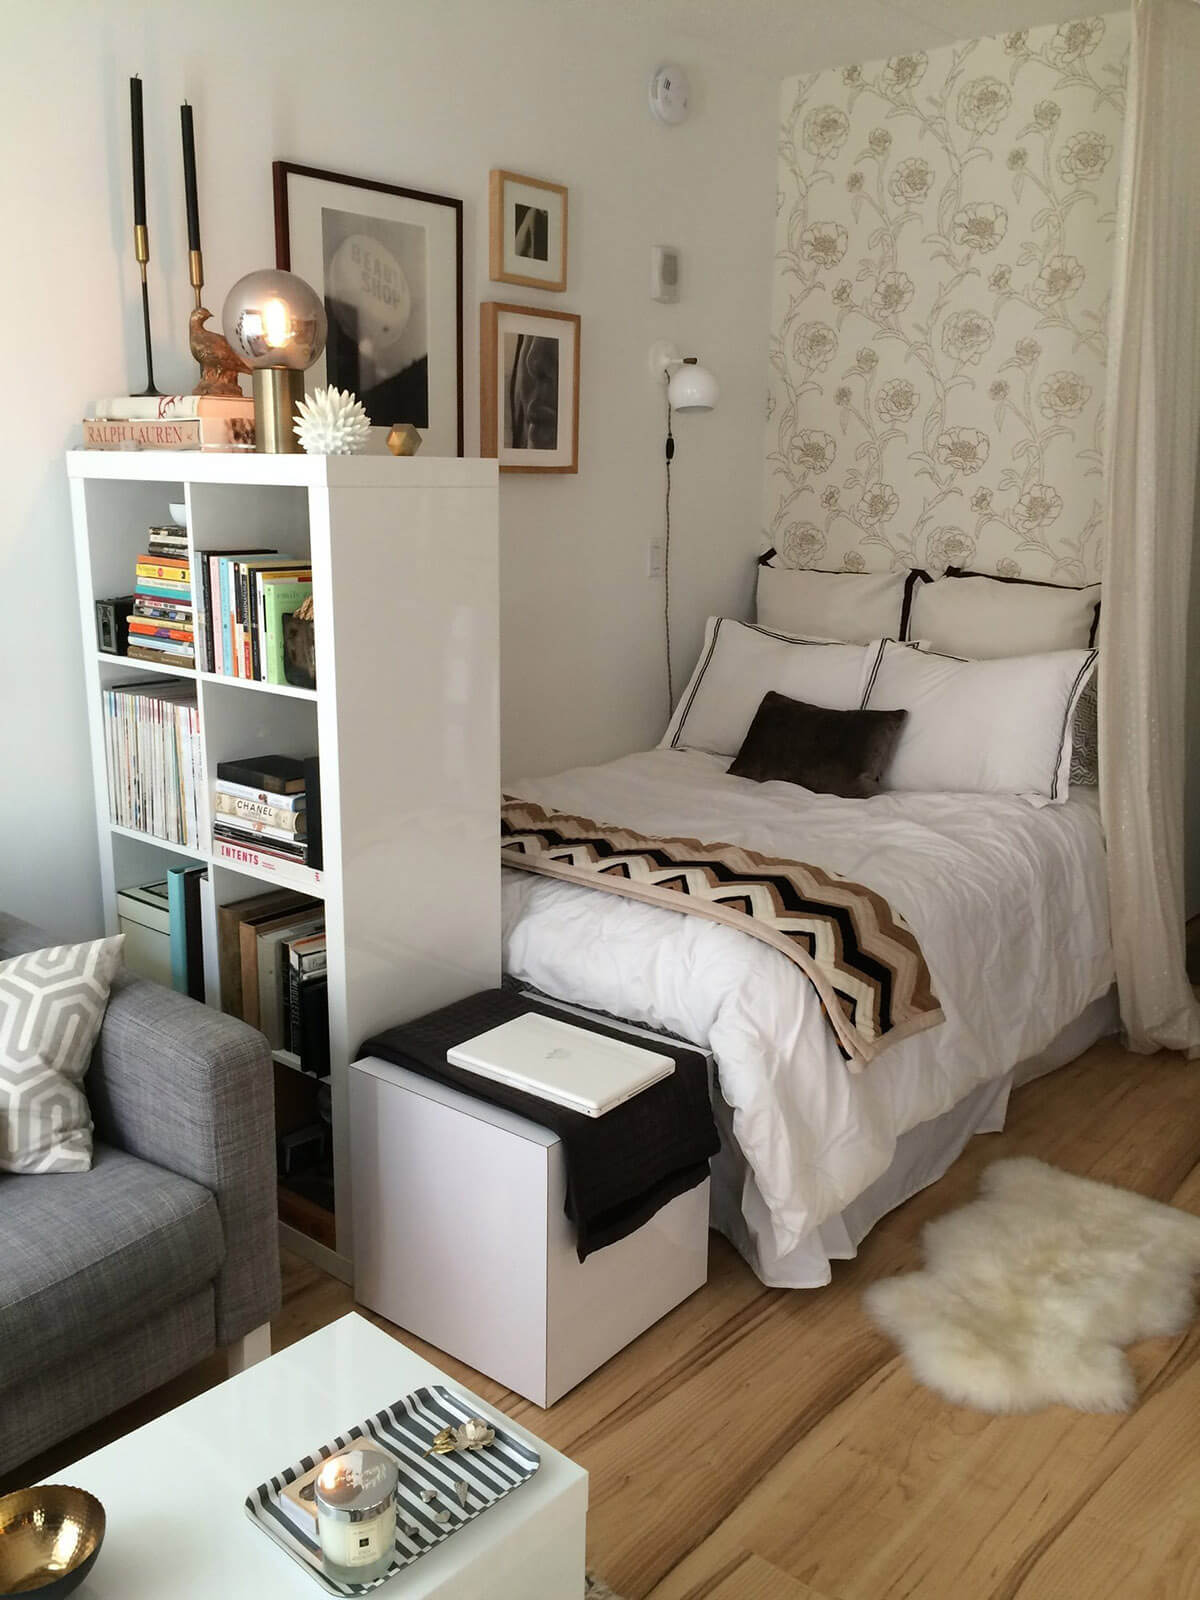 37 Best Small Bedroom Ideas and Designs for 2017 on Ideas For Small Rooms  id=71103